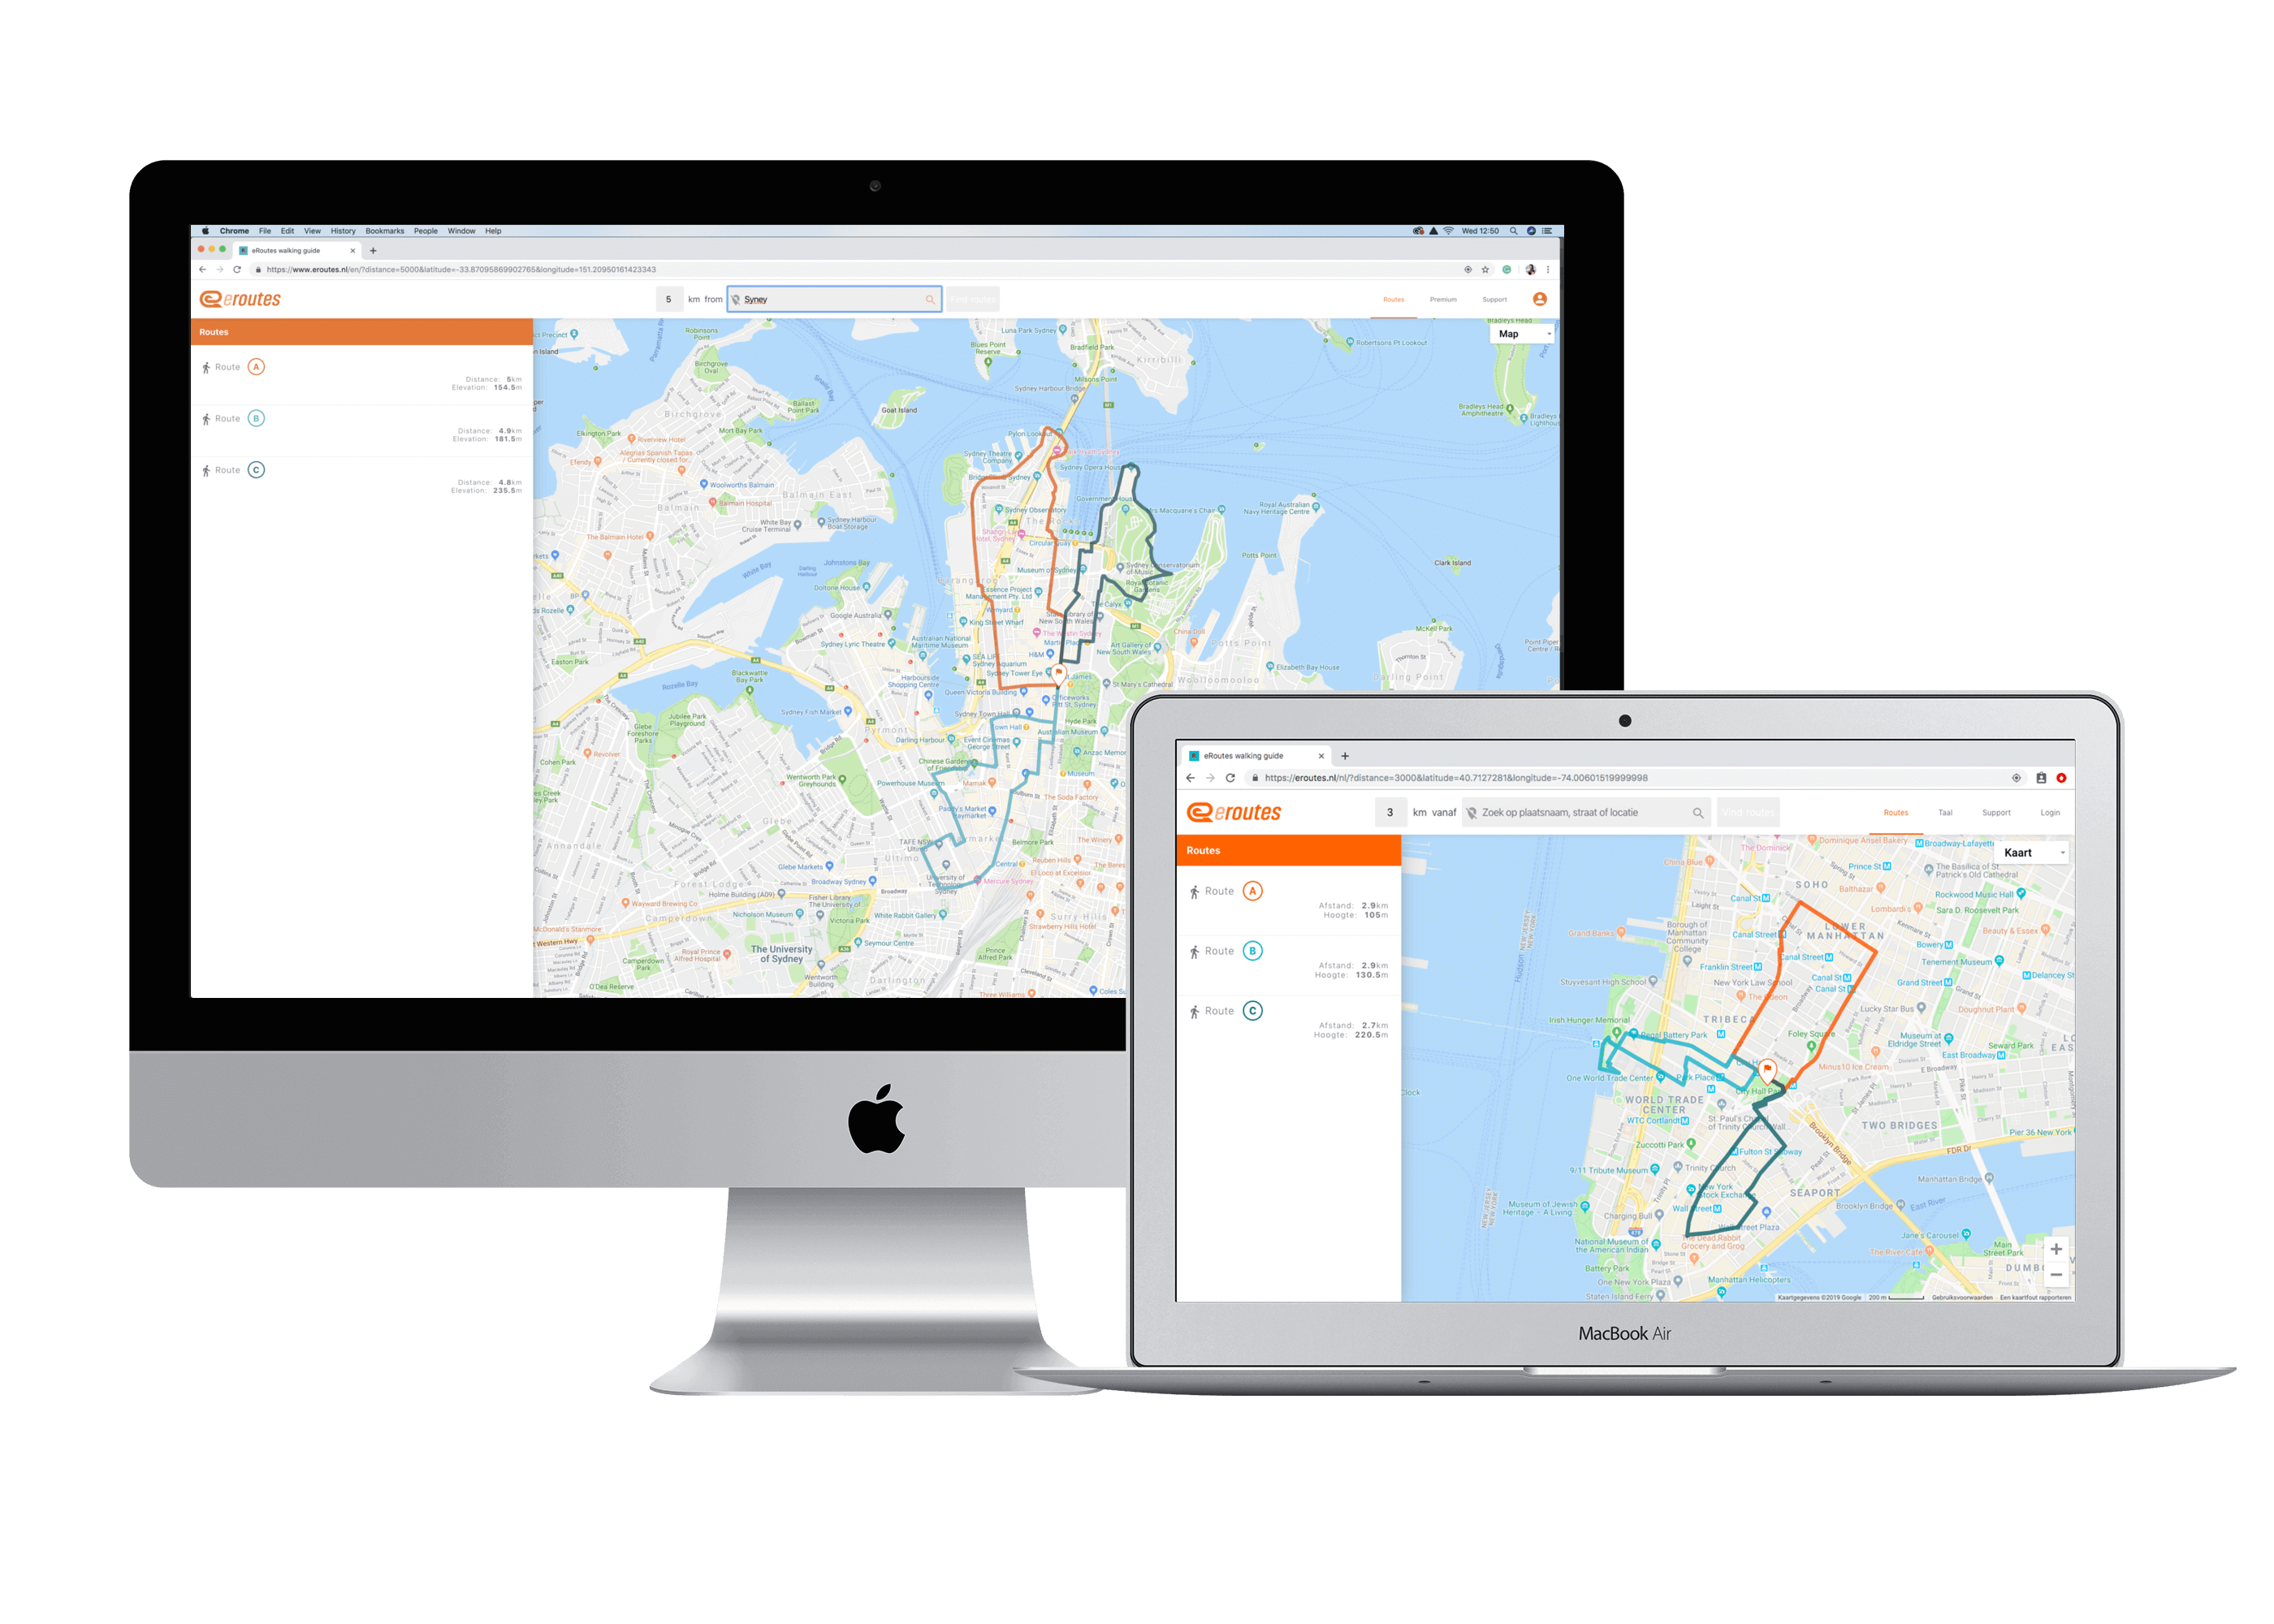 eRoutes route planner on laptop and imac